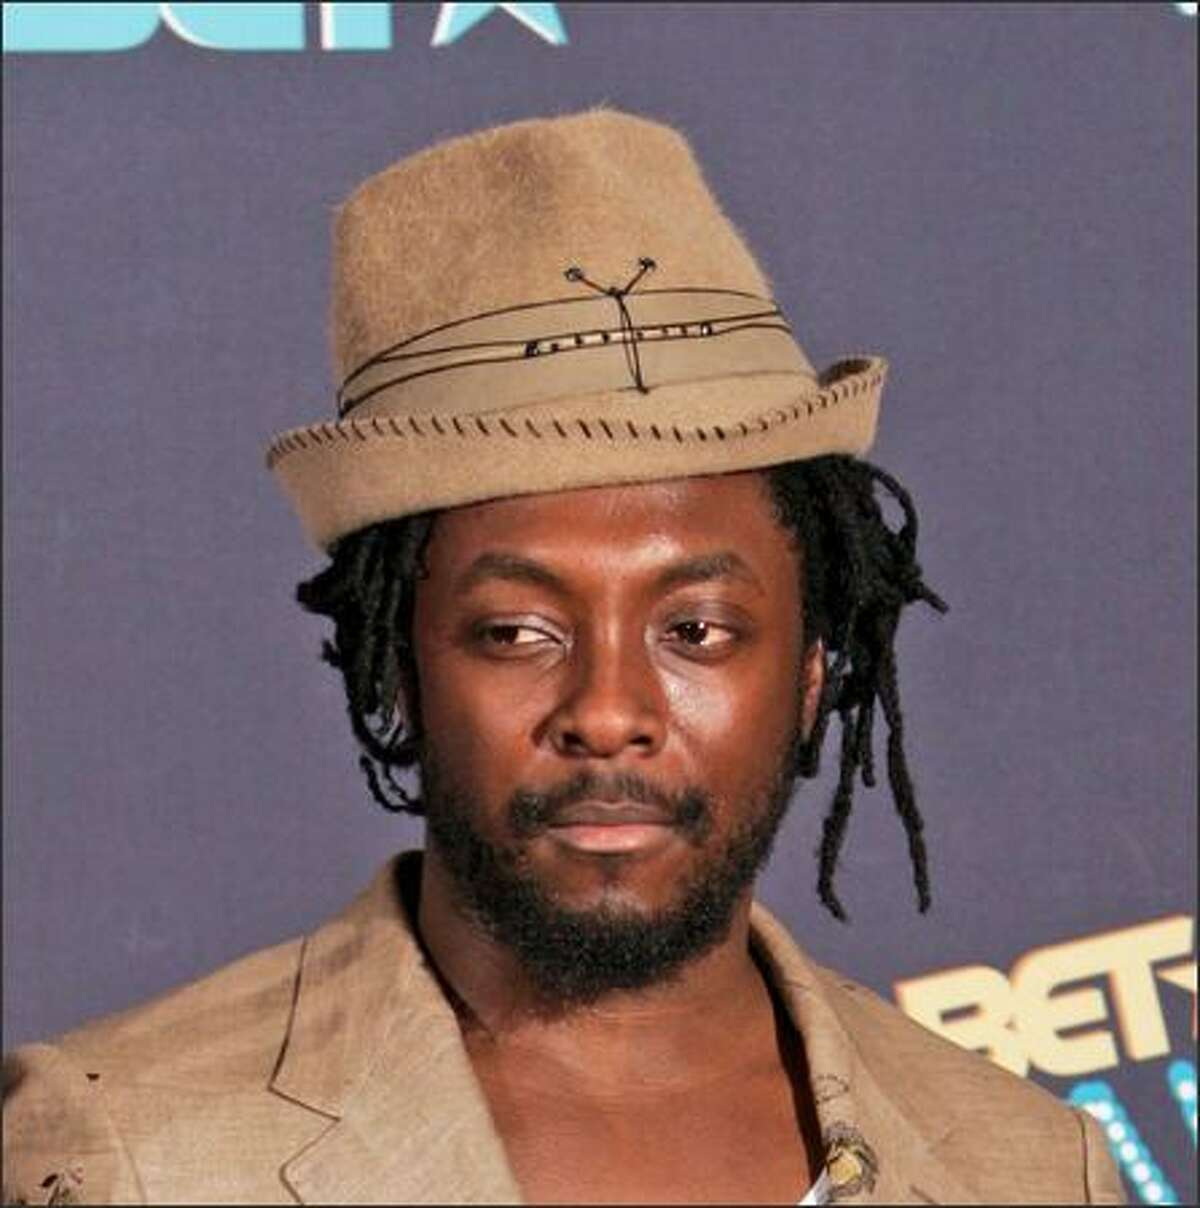 Say it isn't so: Black Eyed Peas' charming lead singer Will.i.am (William Adams) is being investigated by Berlin police after a brawl involving